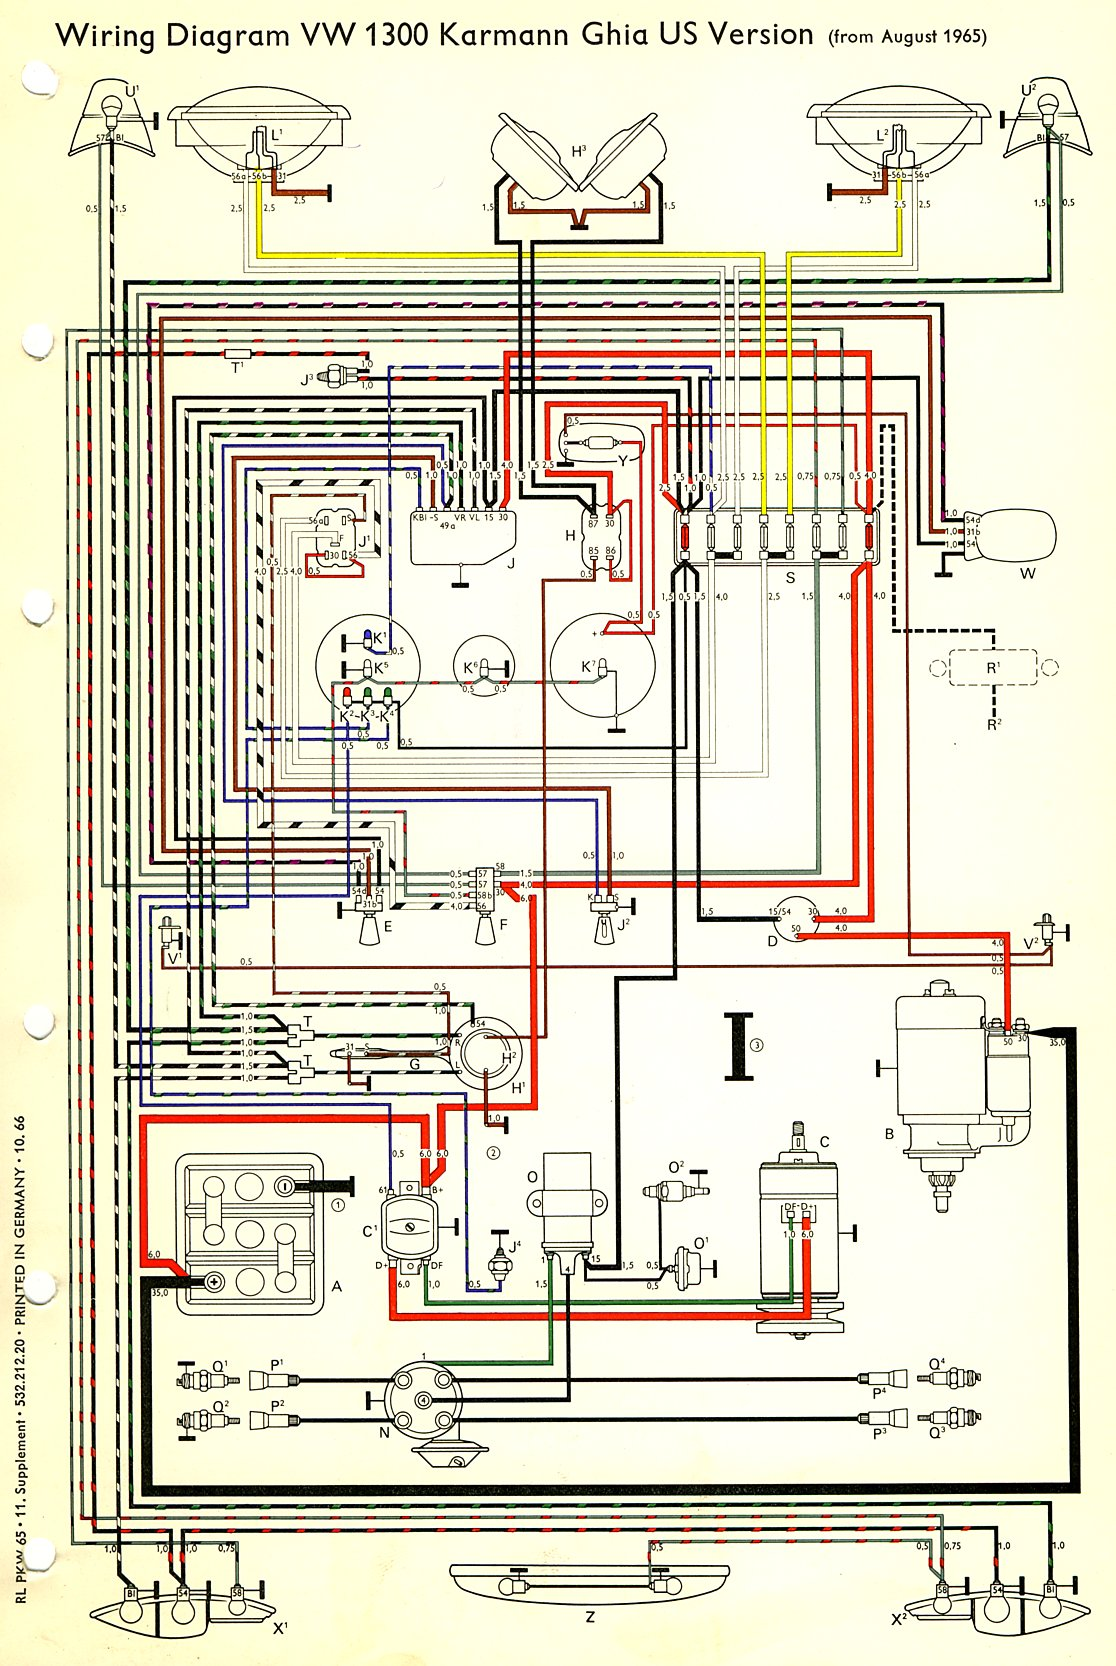 Funky Porsche 911 Wiring Diagram Photo - Best Images for wiring ...